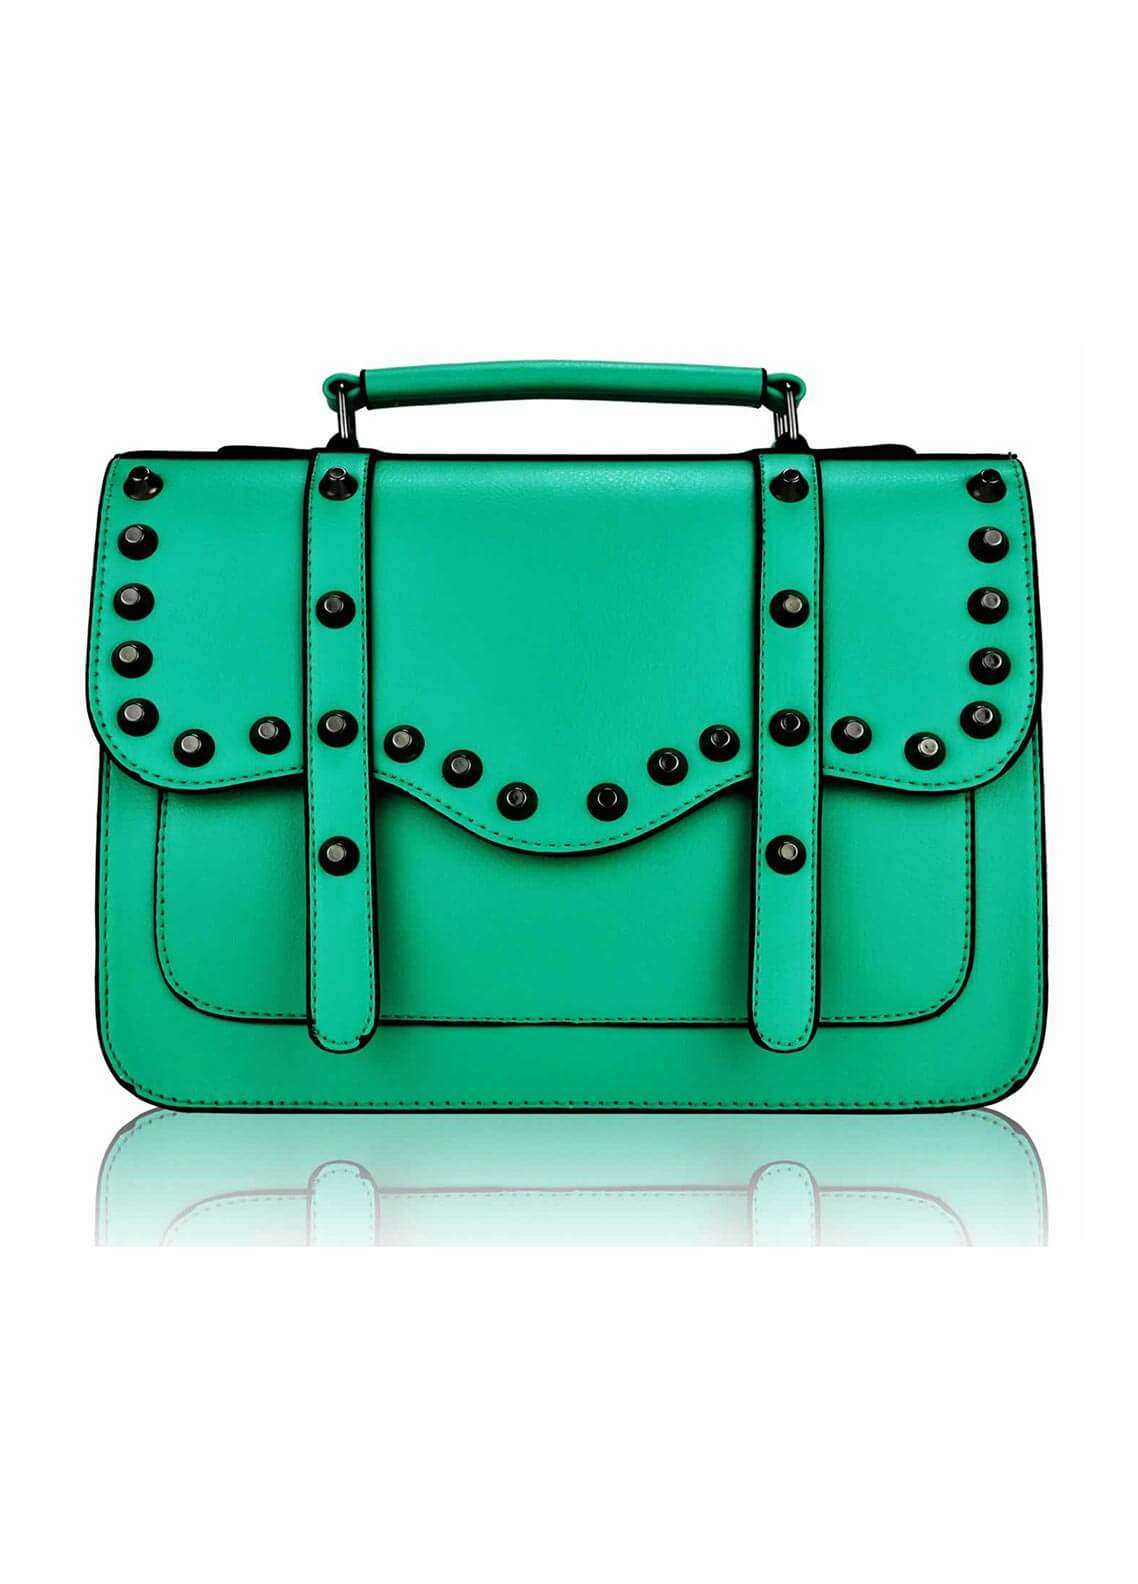 Fashion Only Faux Leather Satchels Bags for Woman - Emerald